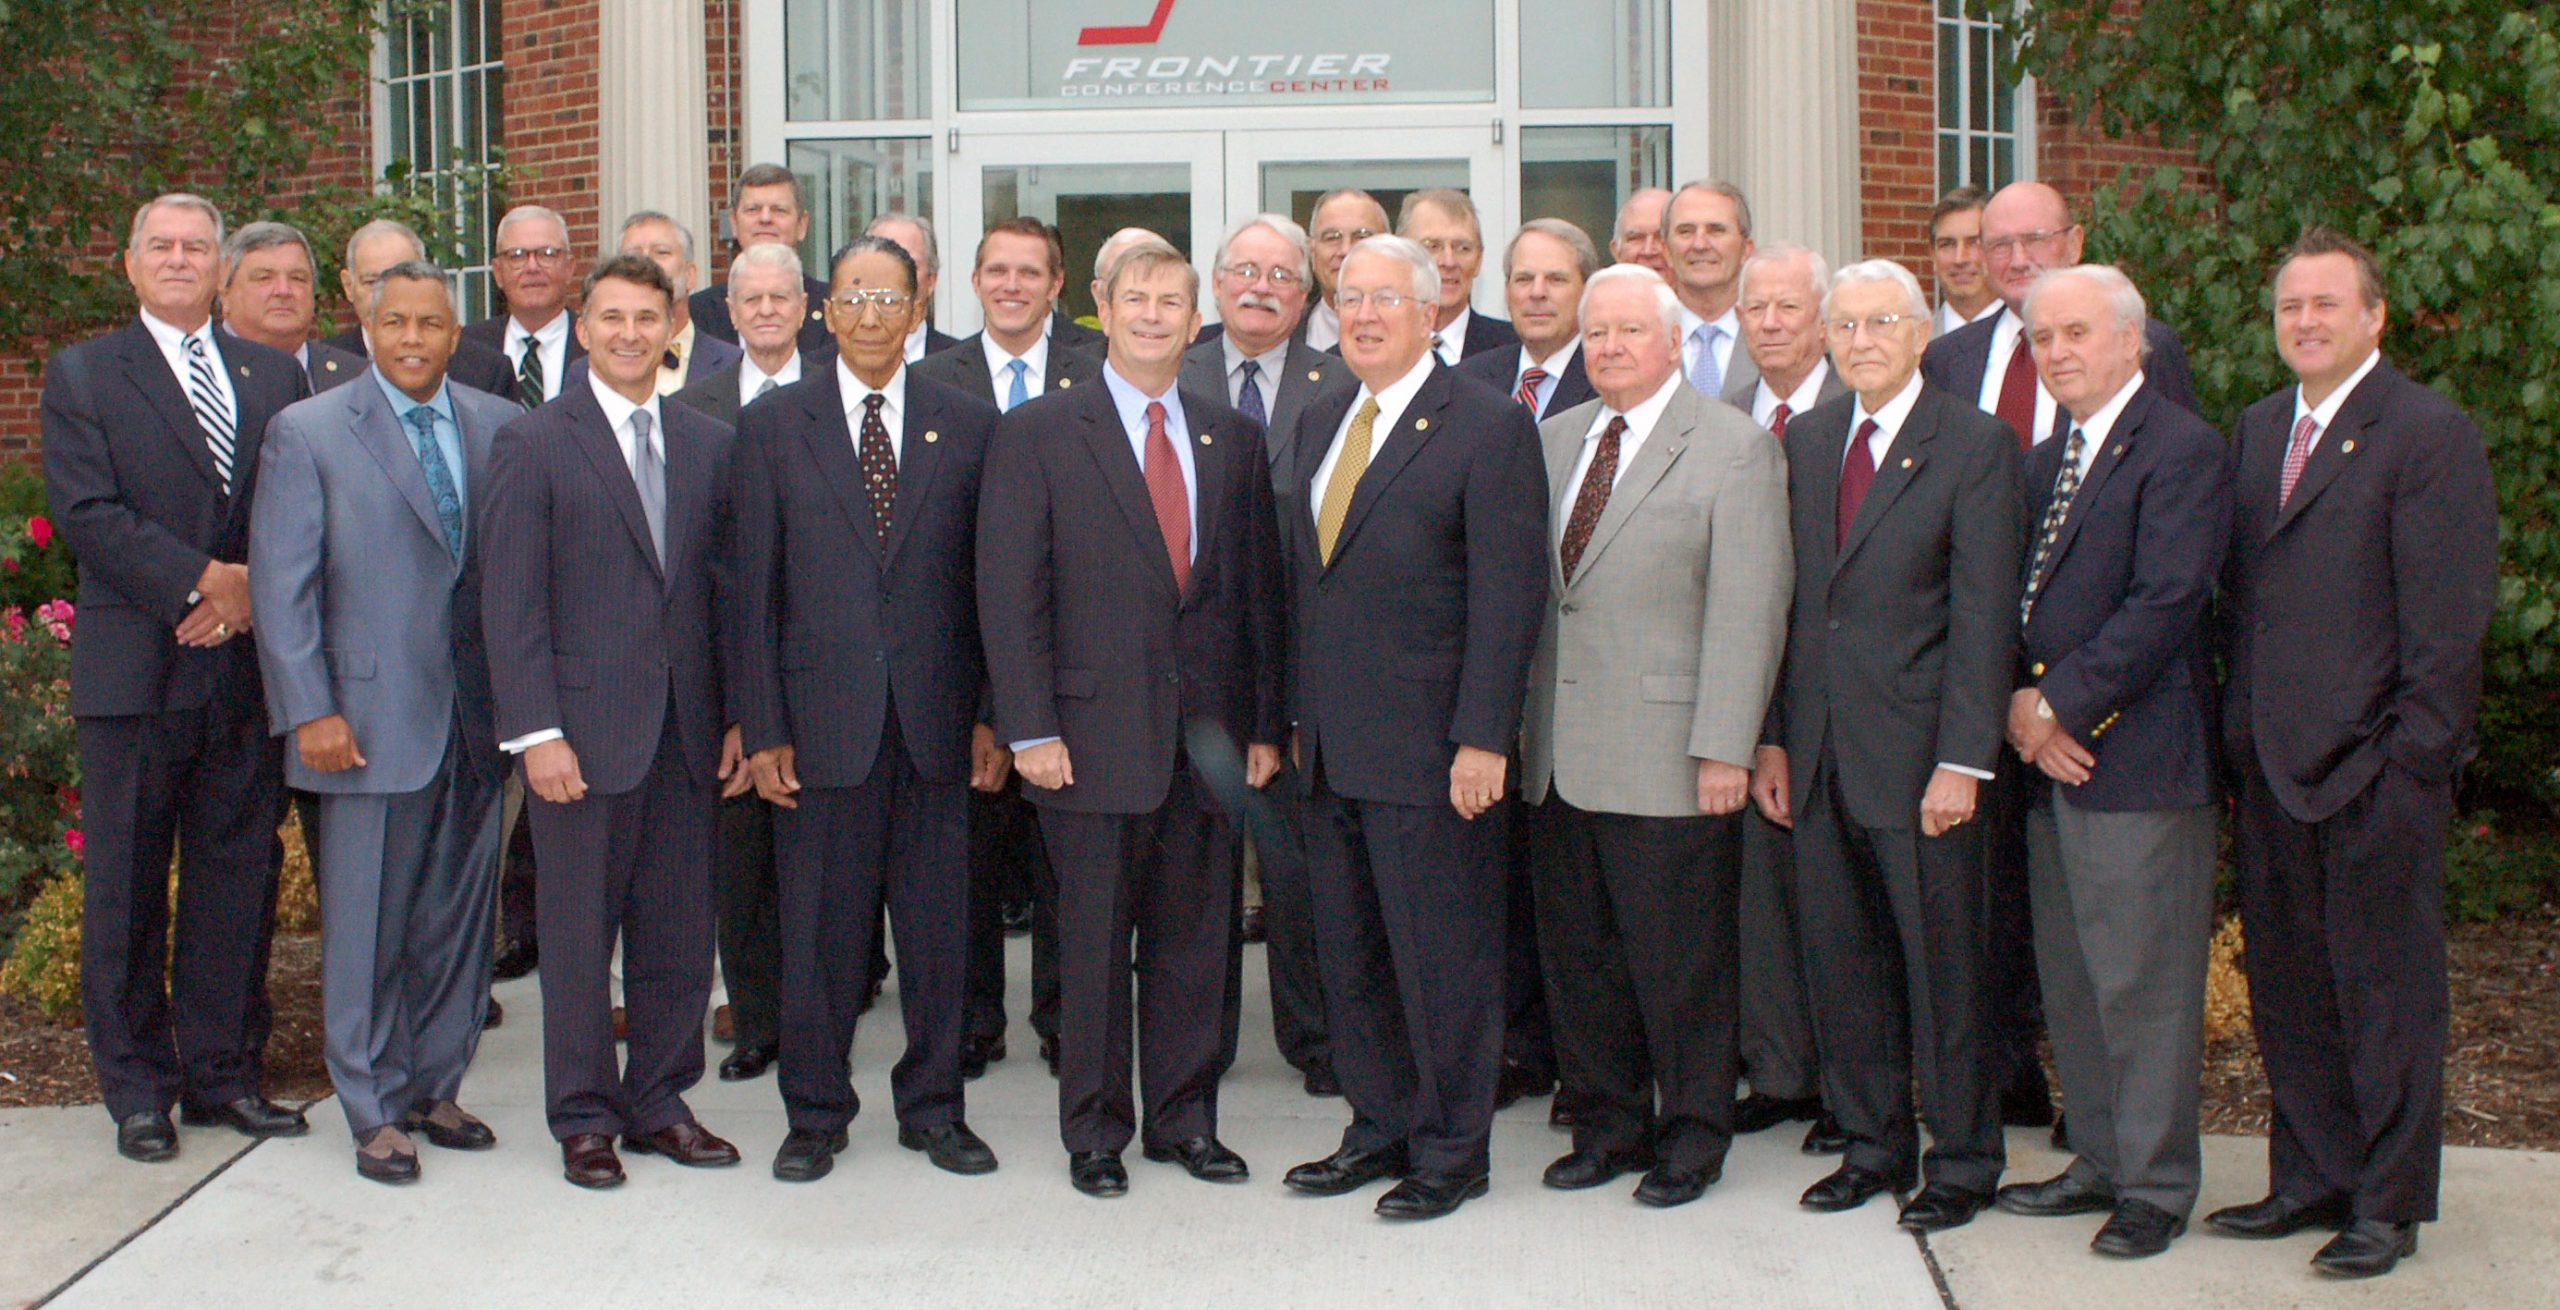 Tim Carlin (front row, second from left) attends his first board meeting as a member of the CGSC Foundation Board of Trustees on Sept. 13, 2012.